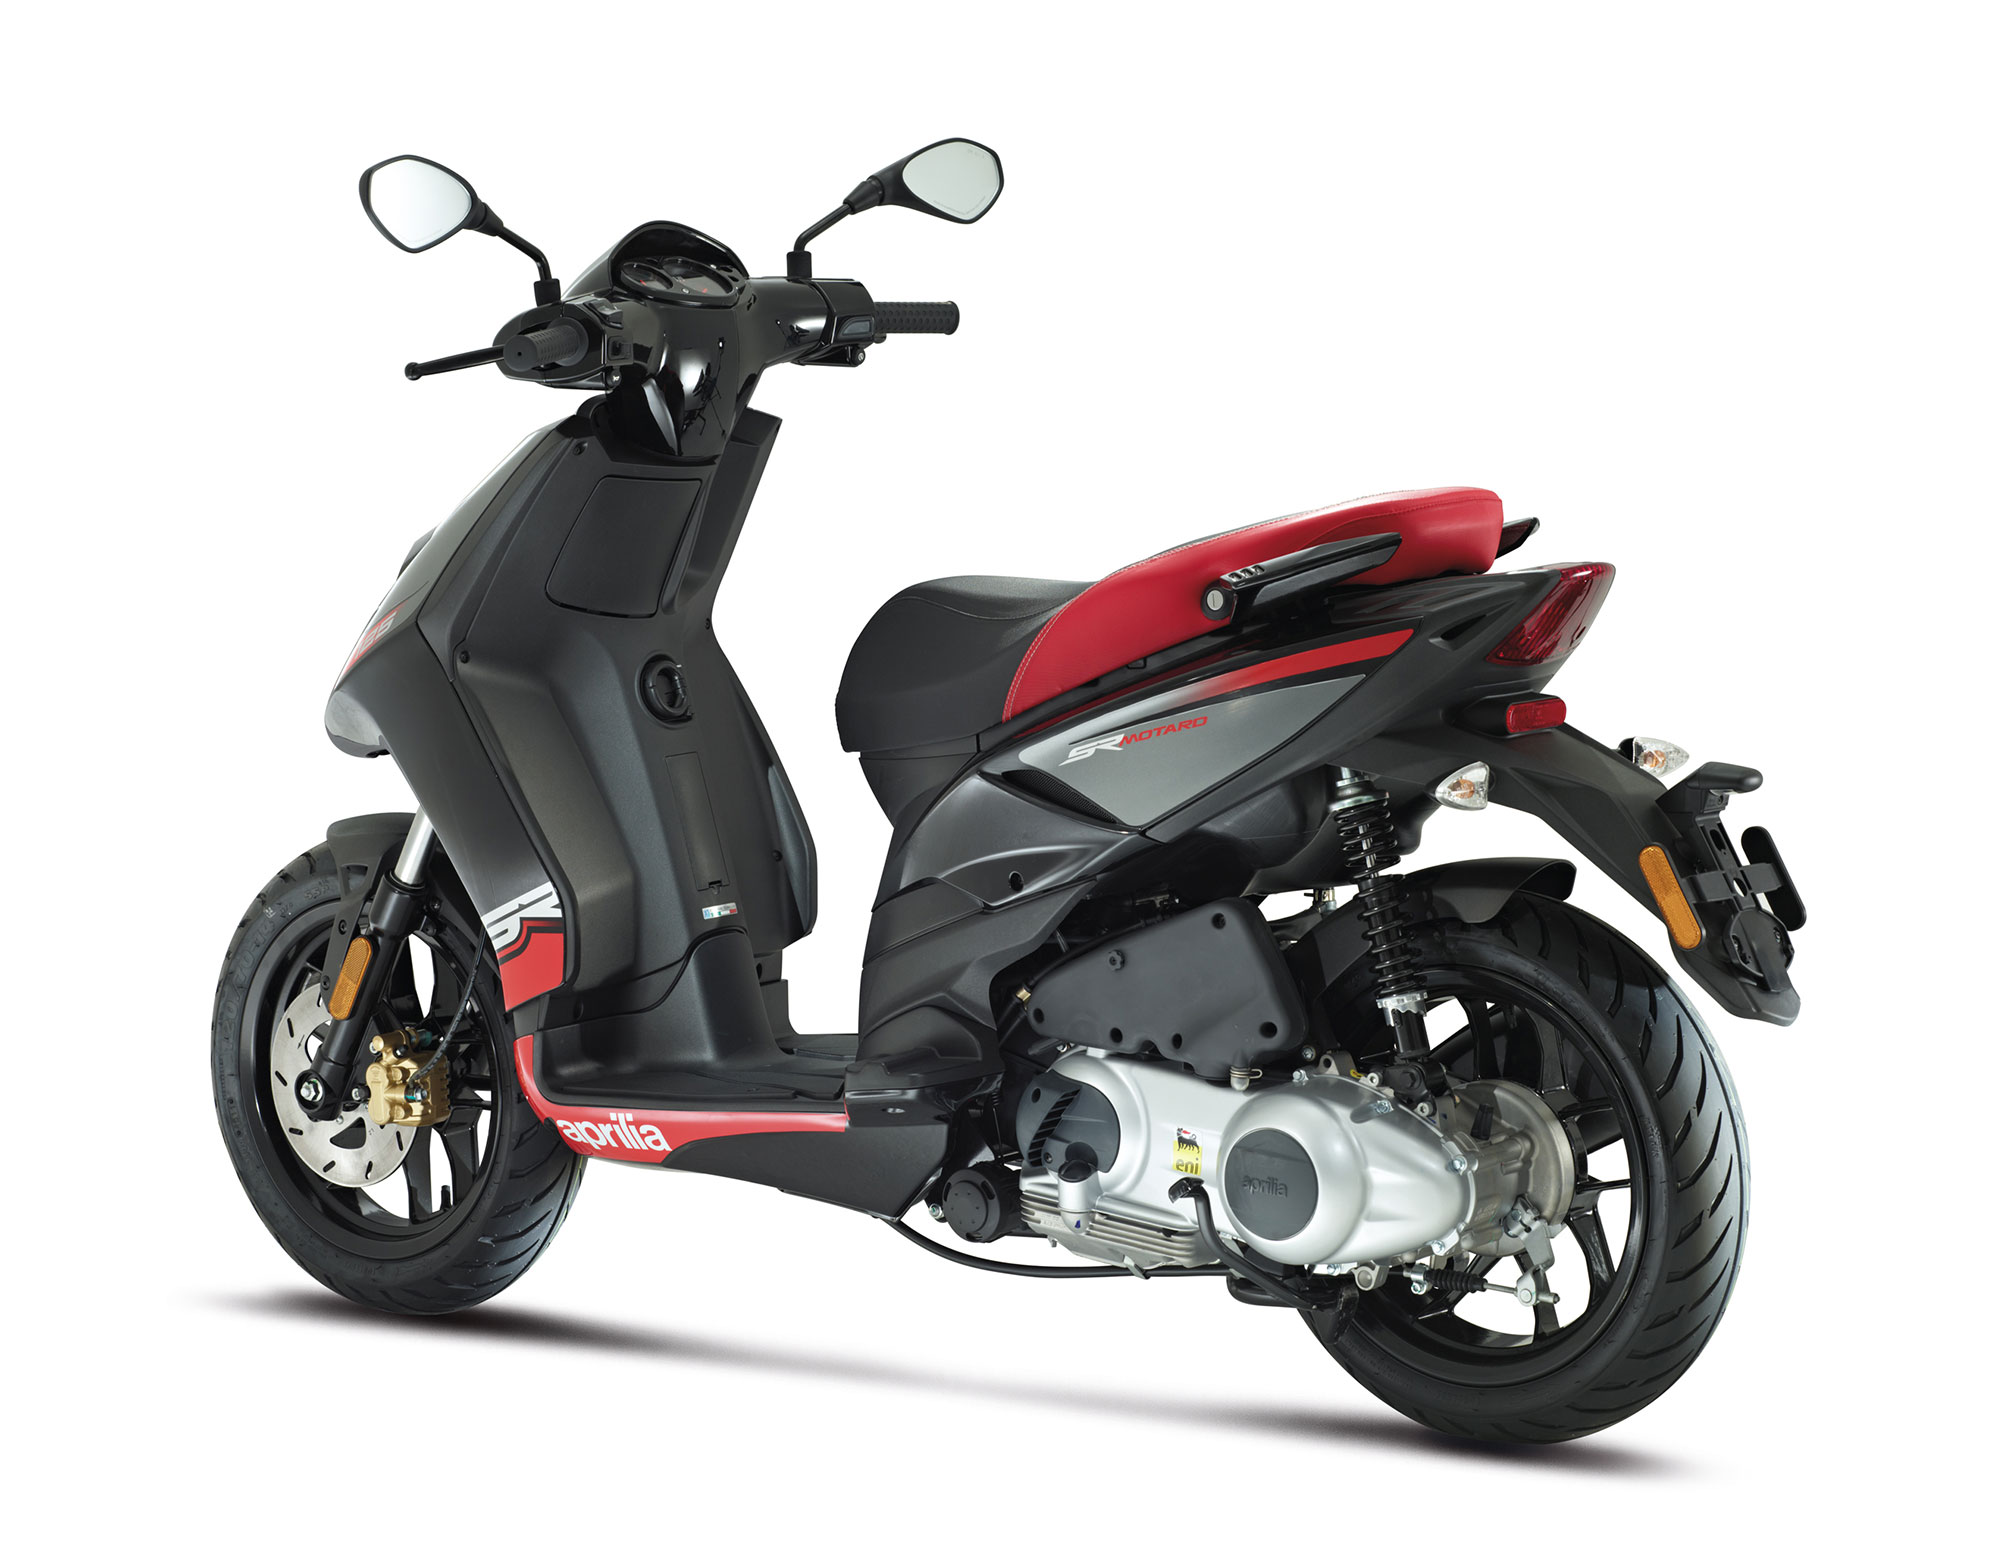 aprilia sr motard 50 specs 2013 2014 autoevolution. Black Bedroom Furniture Sets. Home Design Ideas